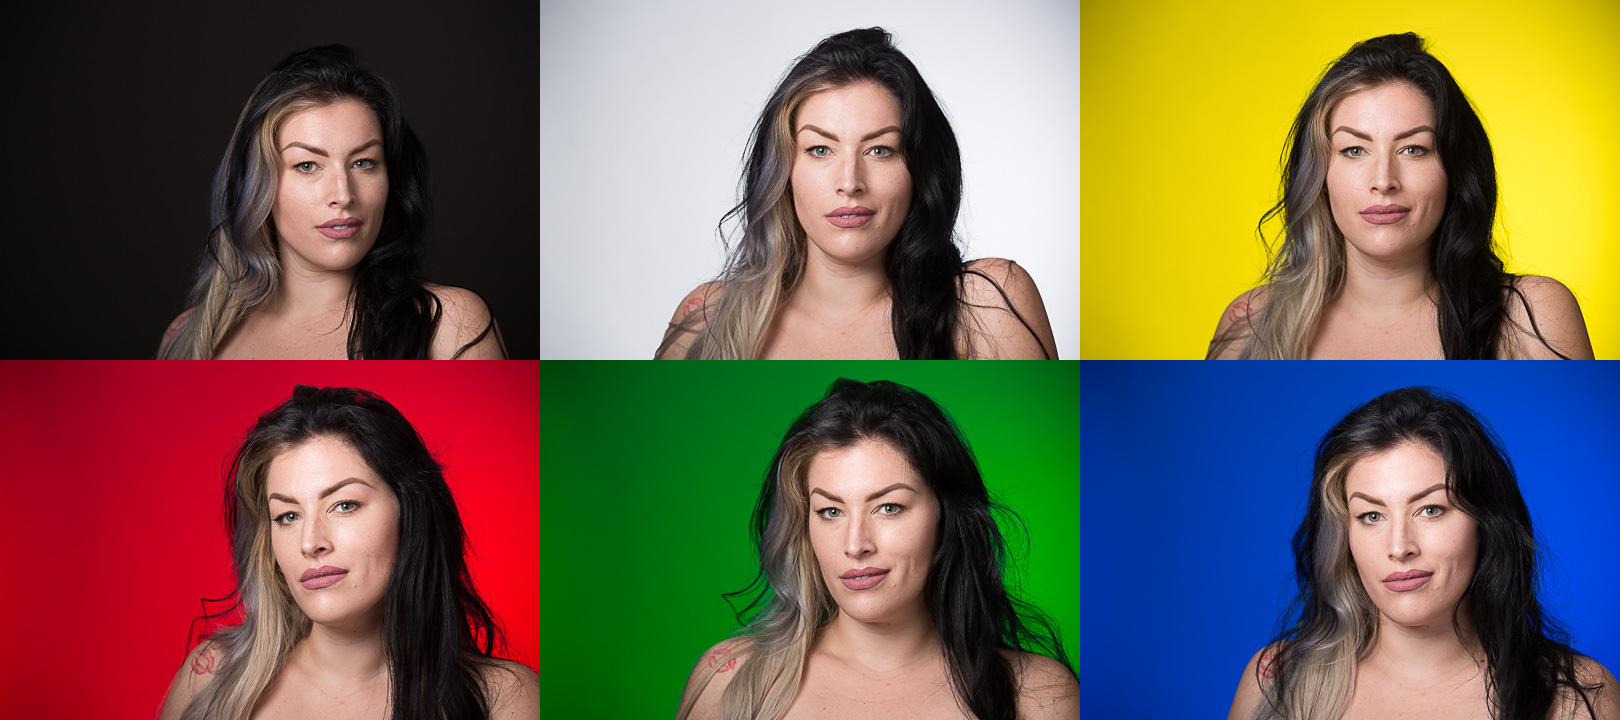 The background is the same in all of these images (the dark gray in the upper left), but by adding light and color gels we can create different backgrounds by John Cornicello.